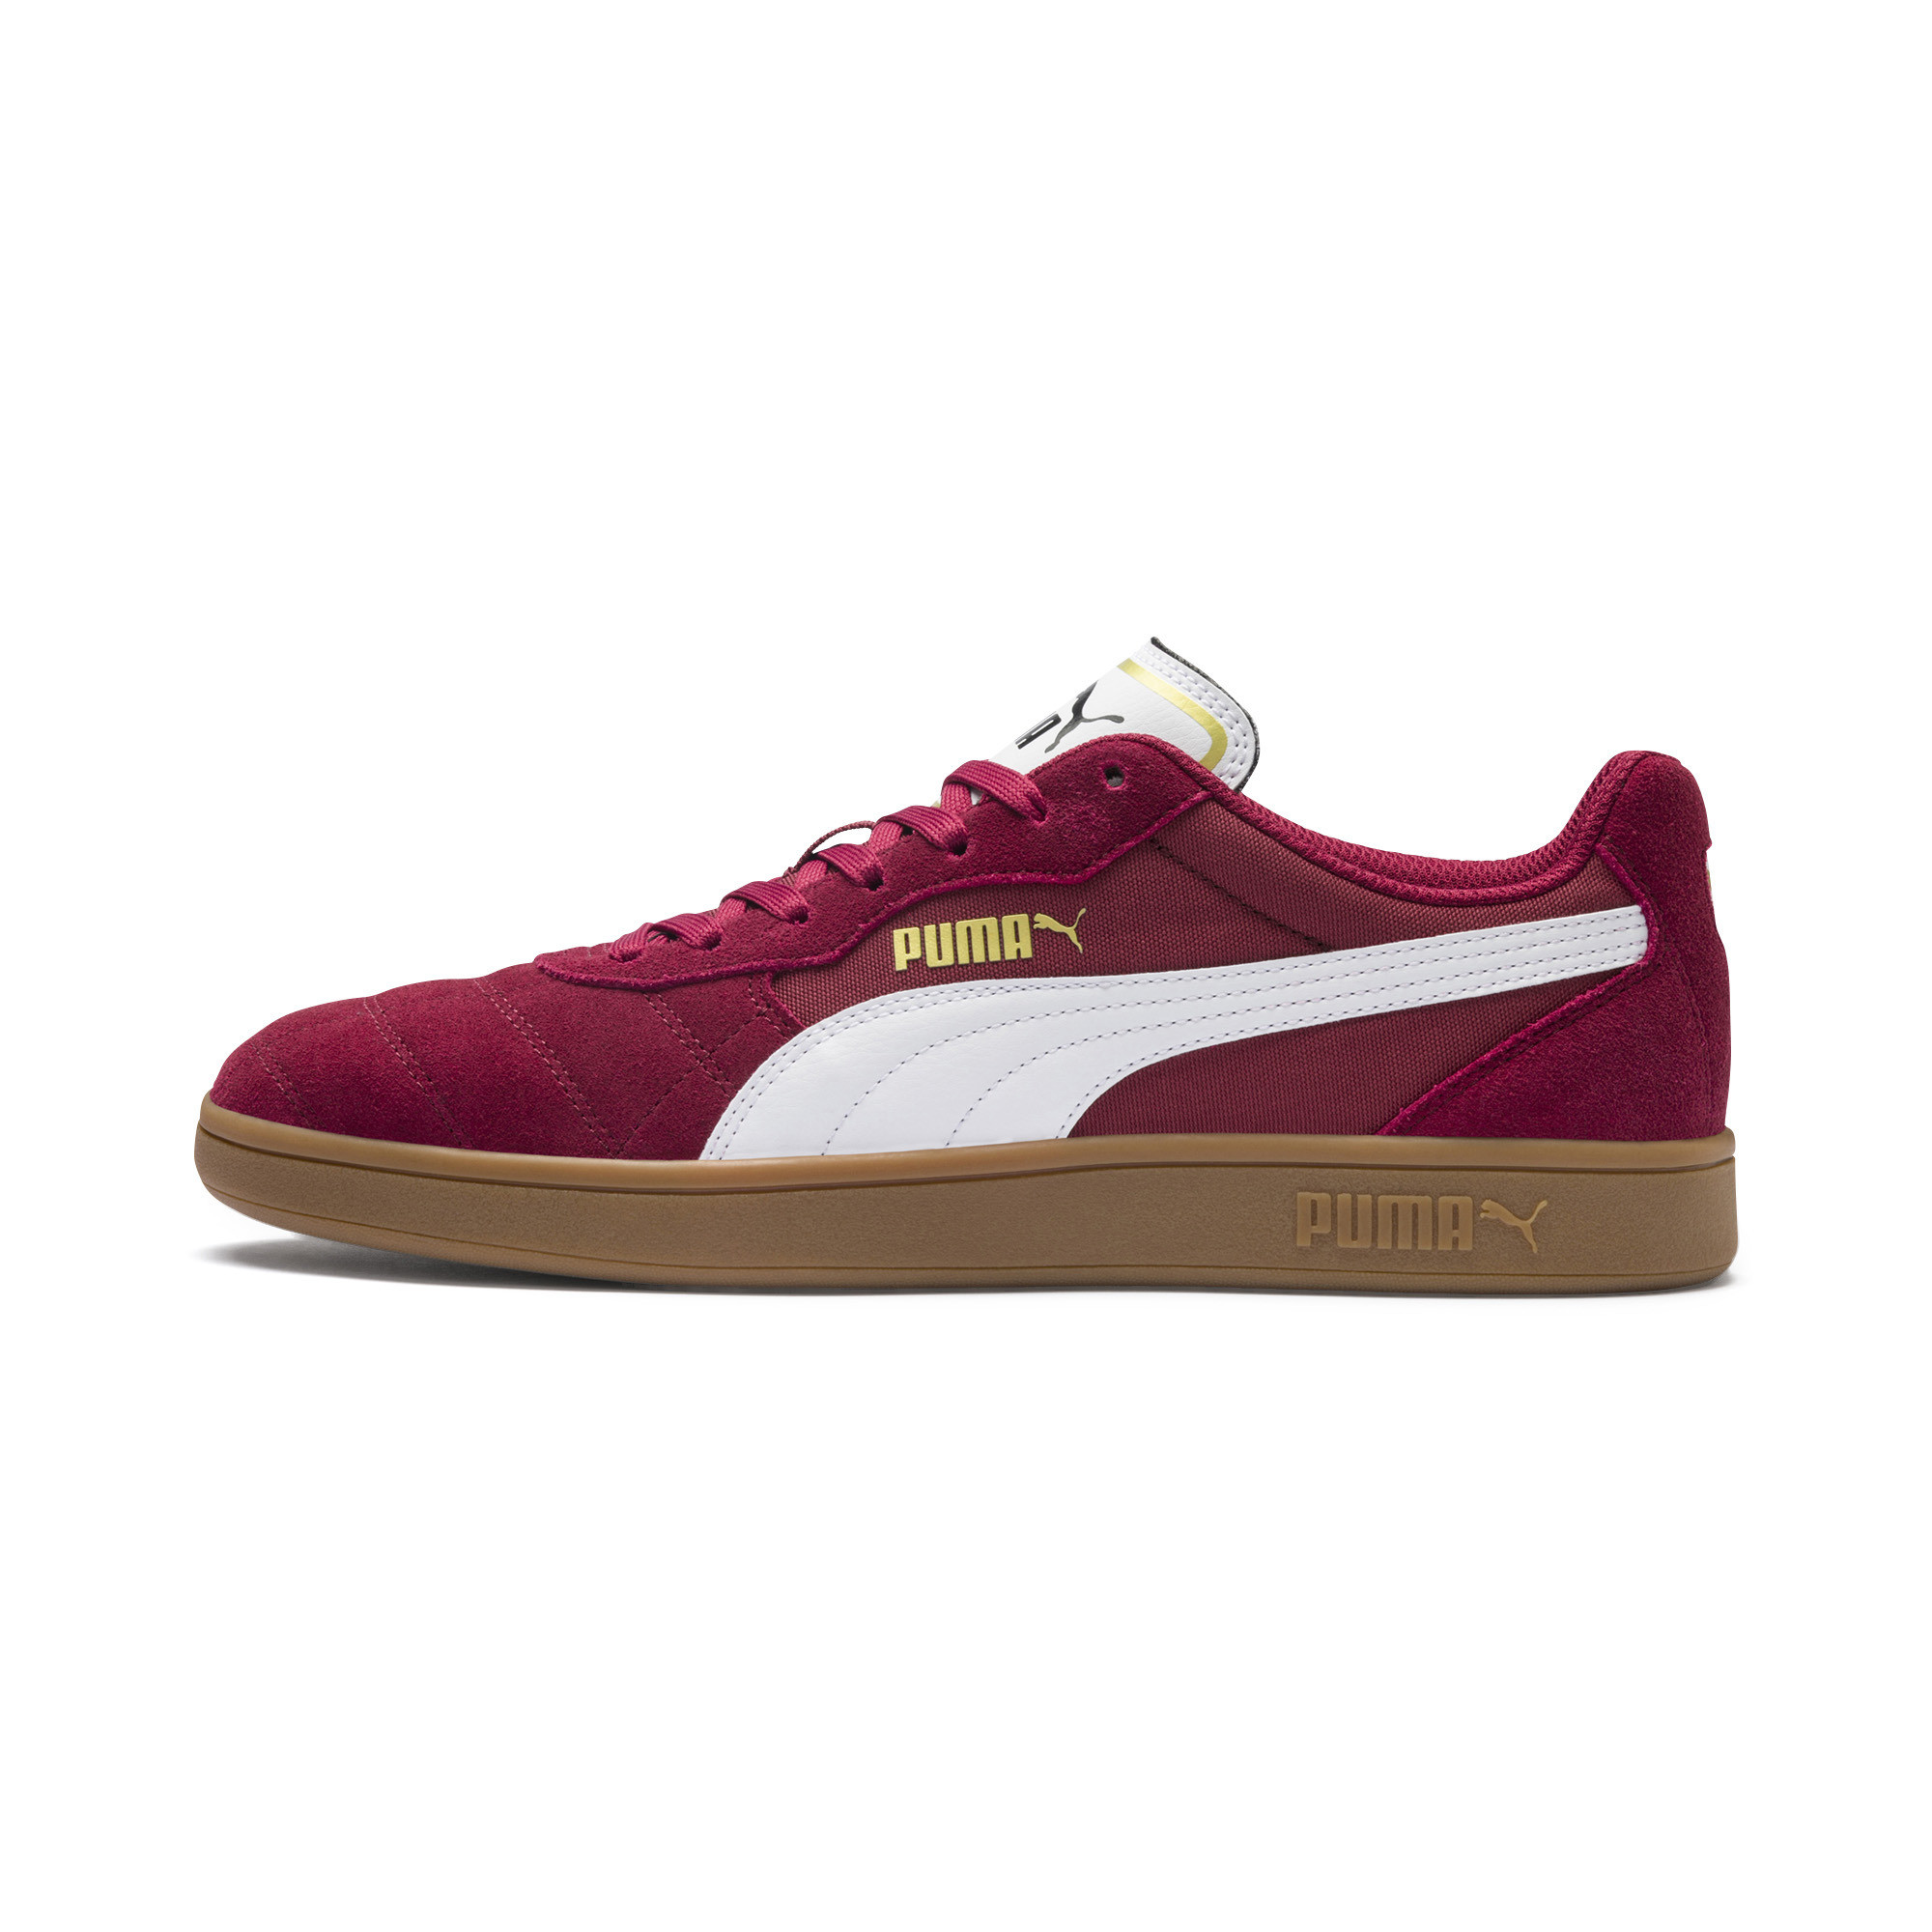 PUMA-Astro-Kick-Sneakers-Men-Shoe-Basics thumbnail 4